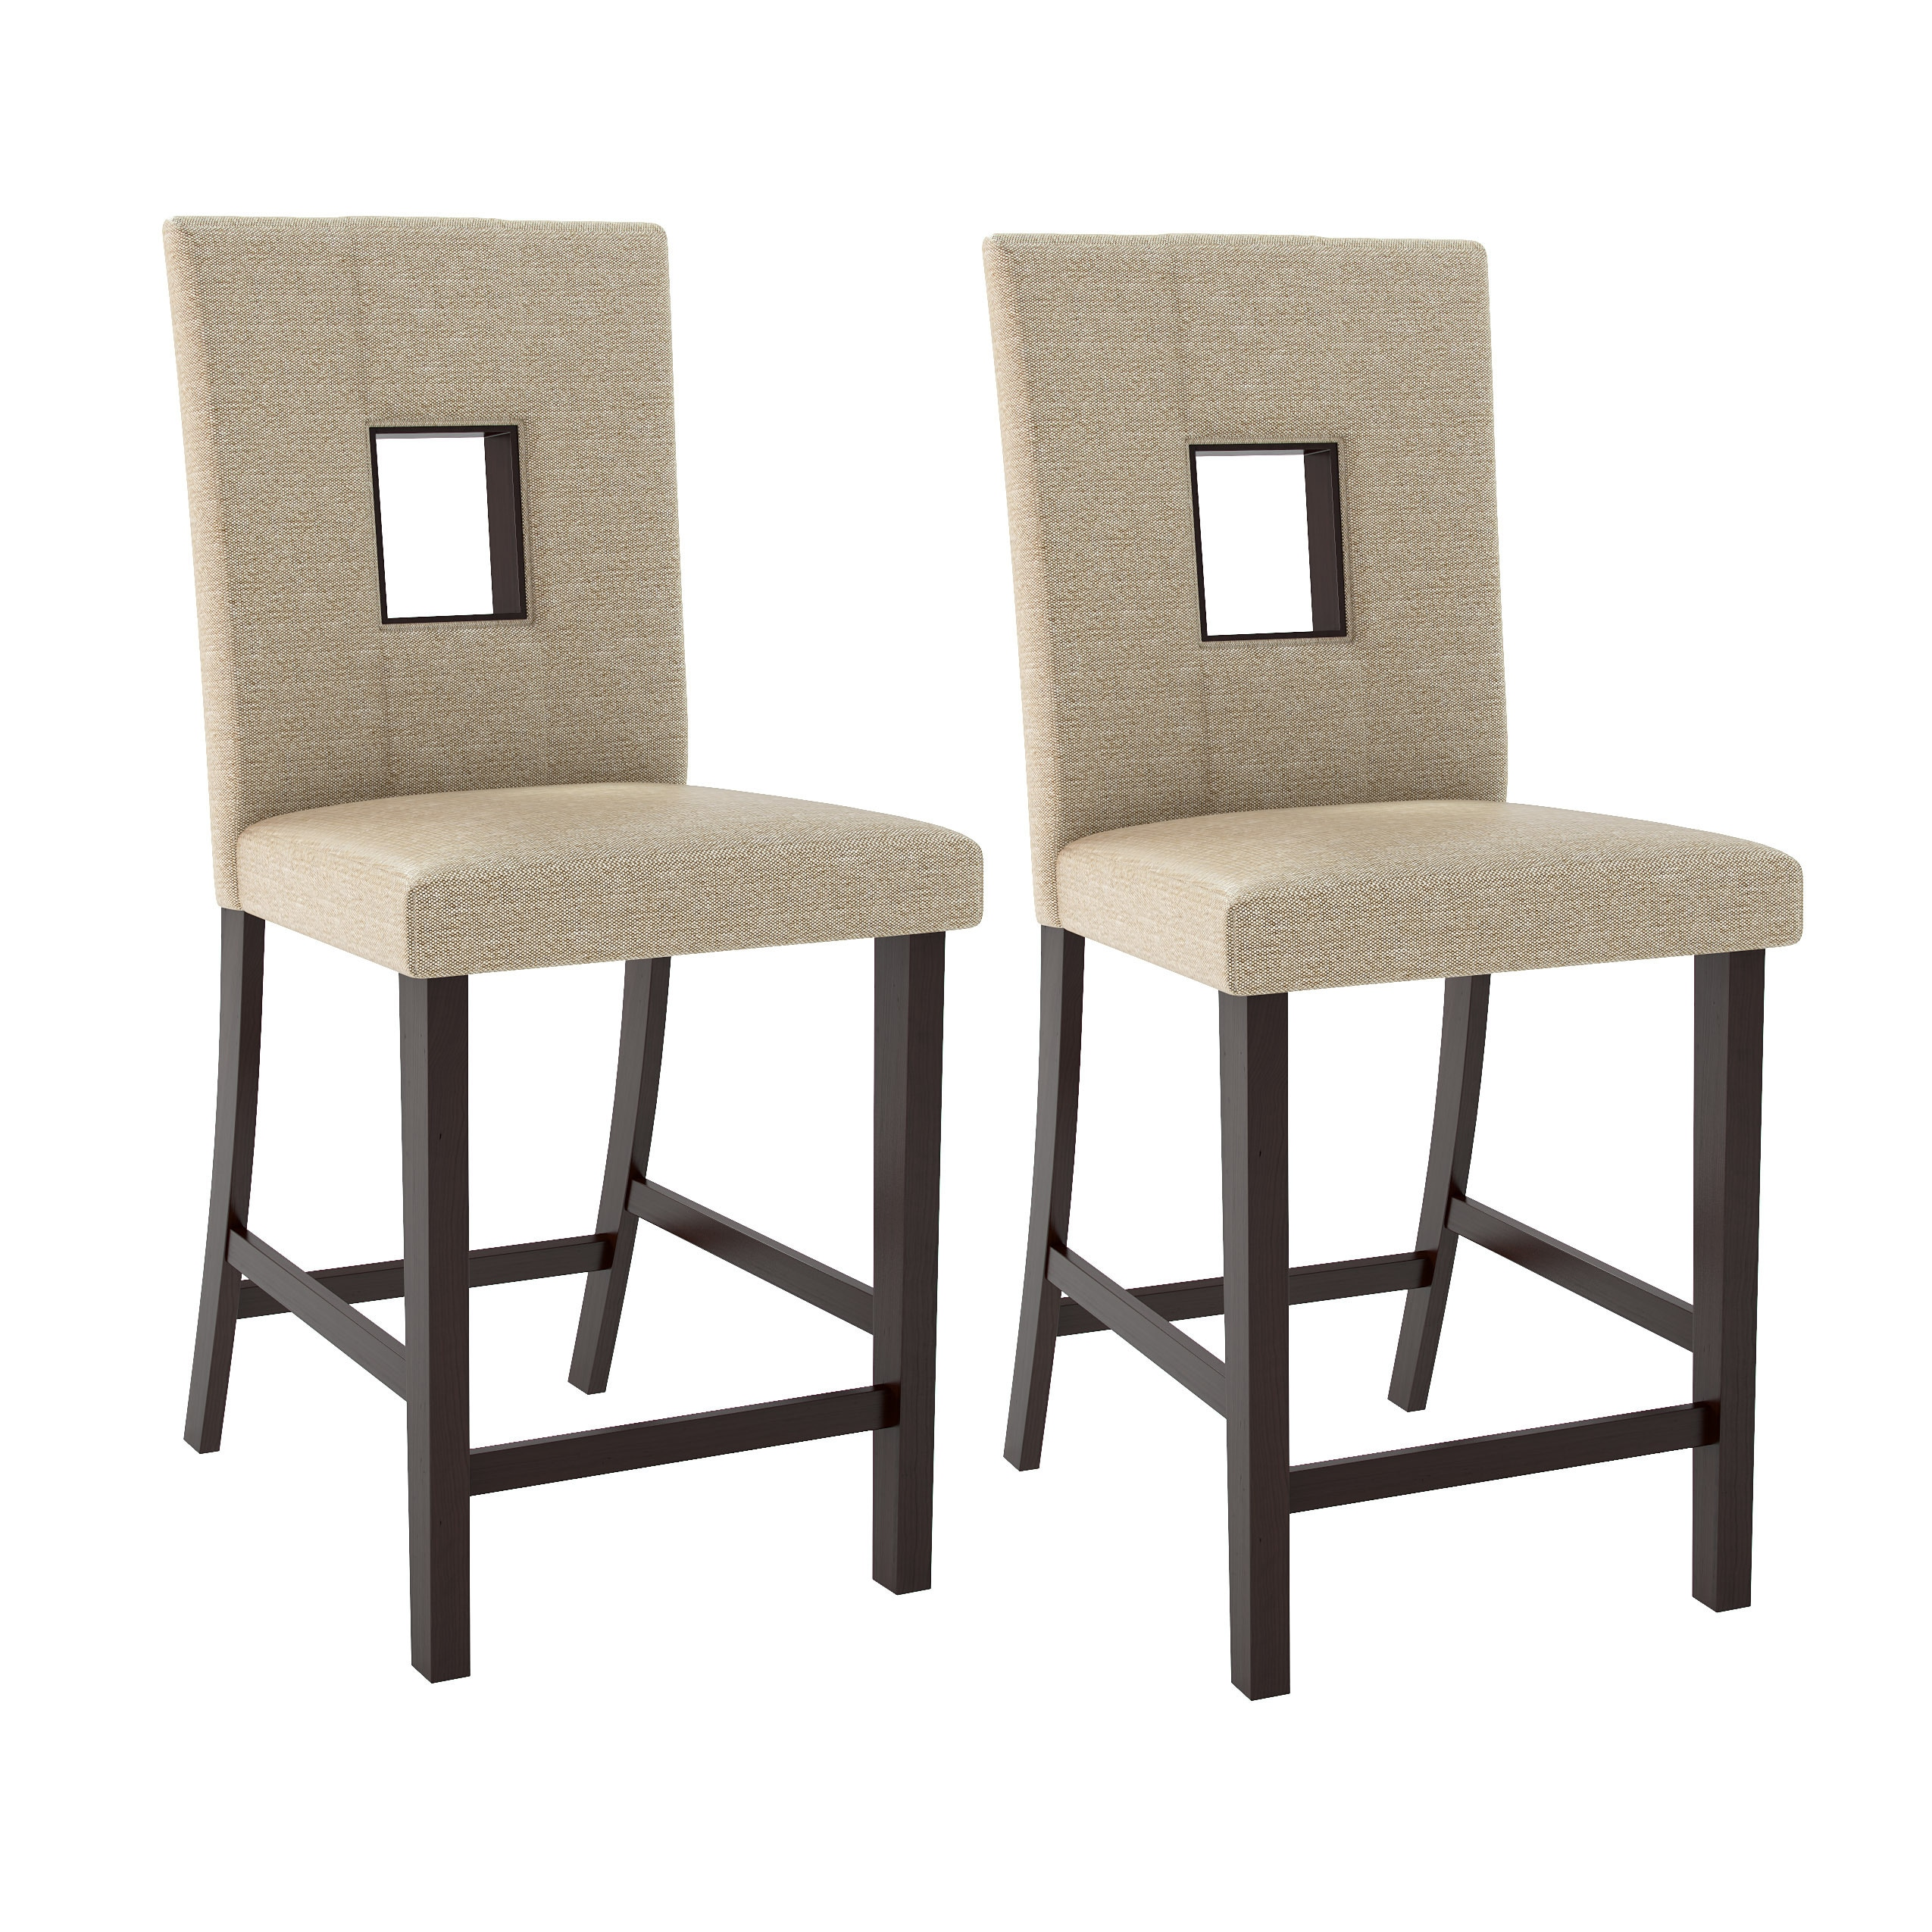 CorLiving Bistro Dining Chairs in Woven Cream Fabric, Set...